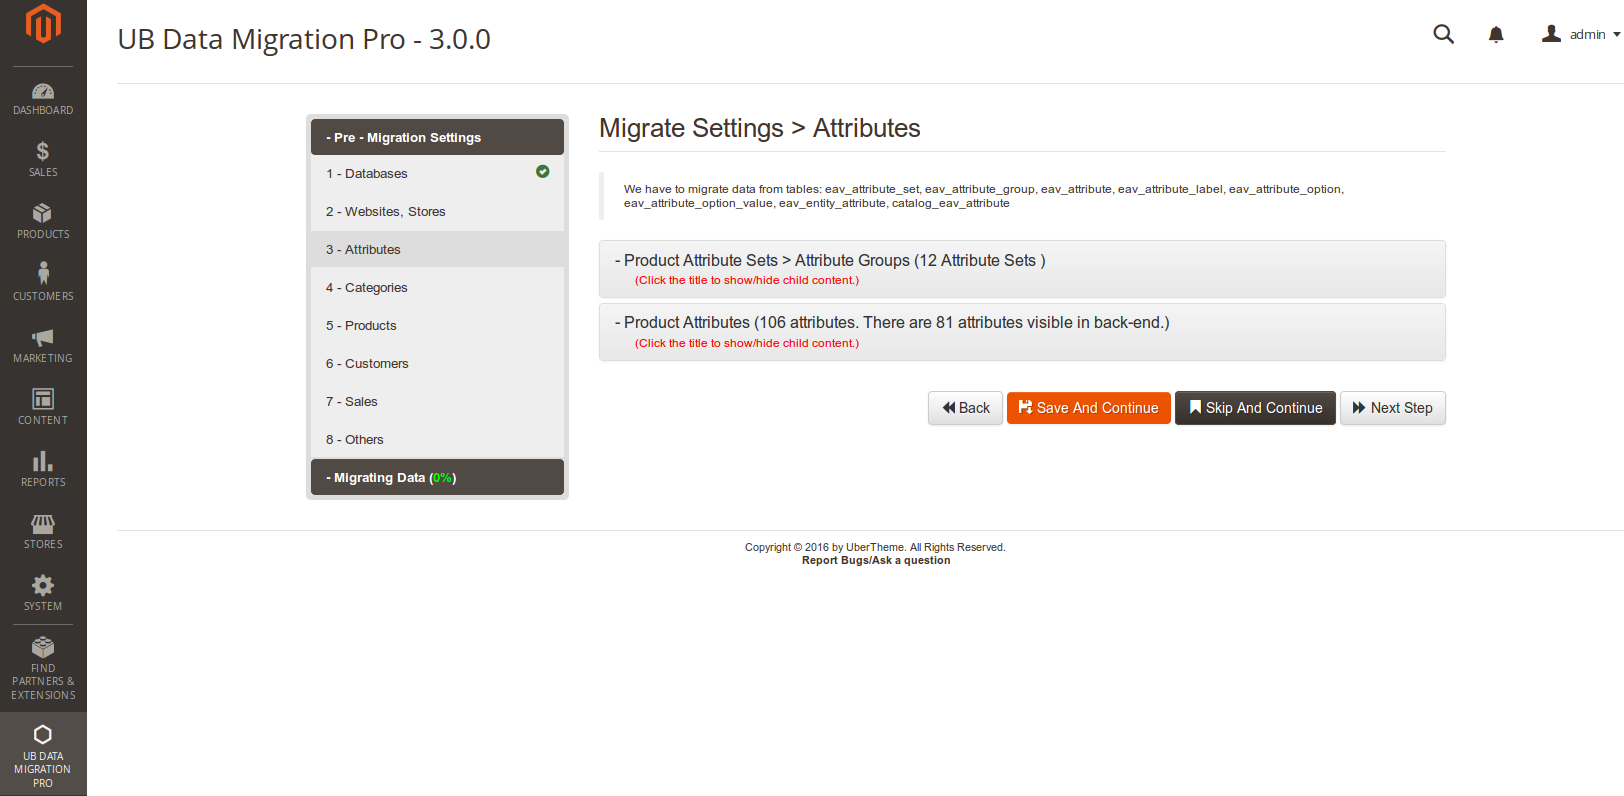 Step 3 - Migrate Attribute